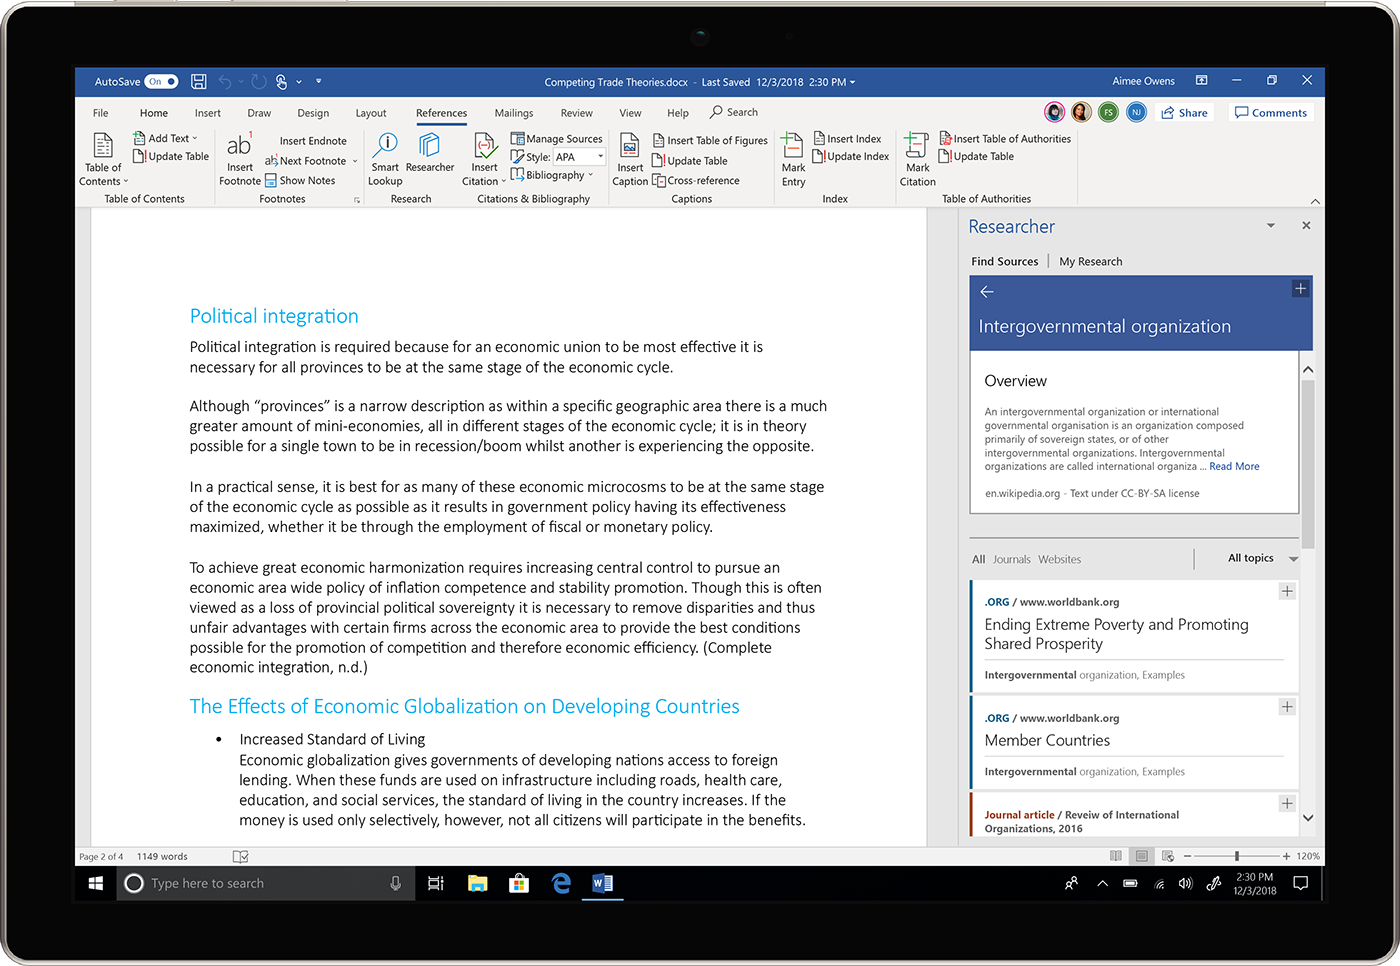 Image of the Researcher pane being used in Word.